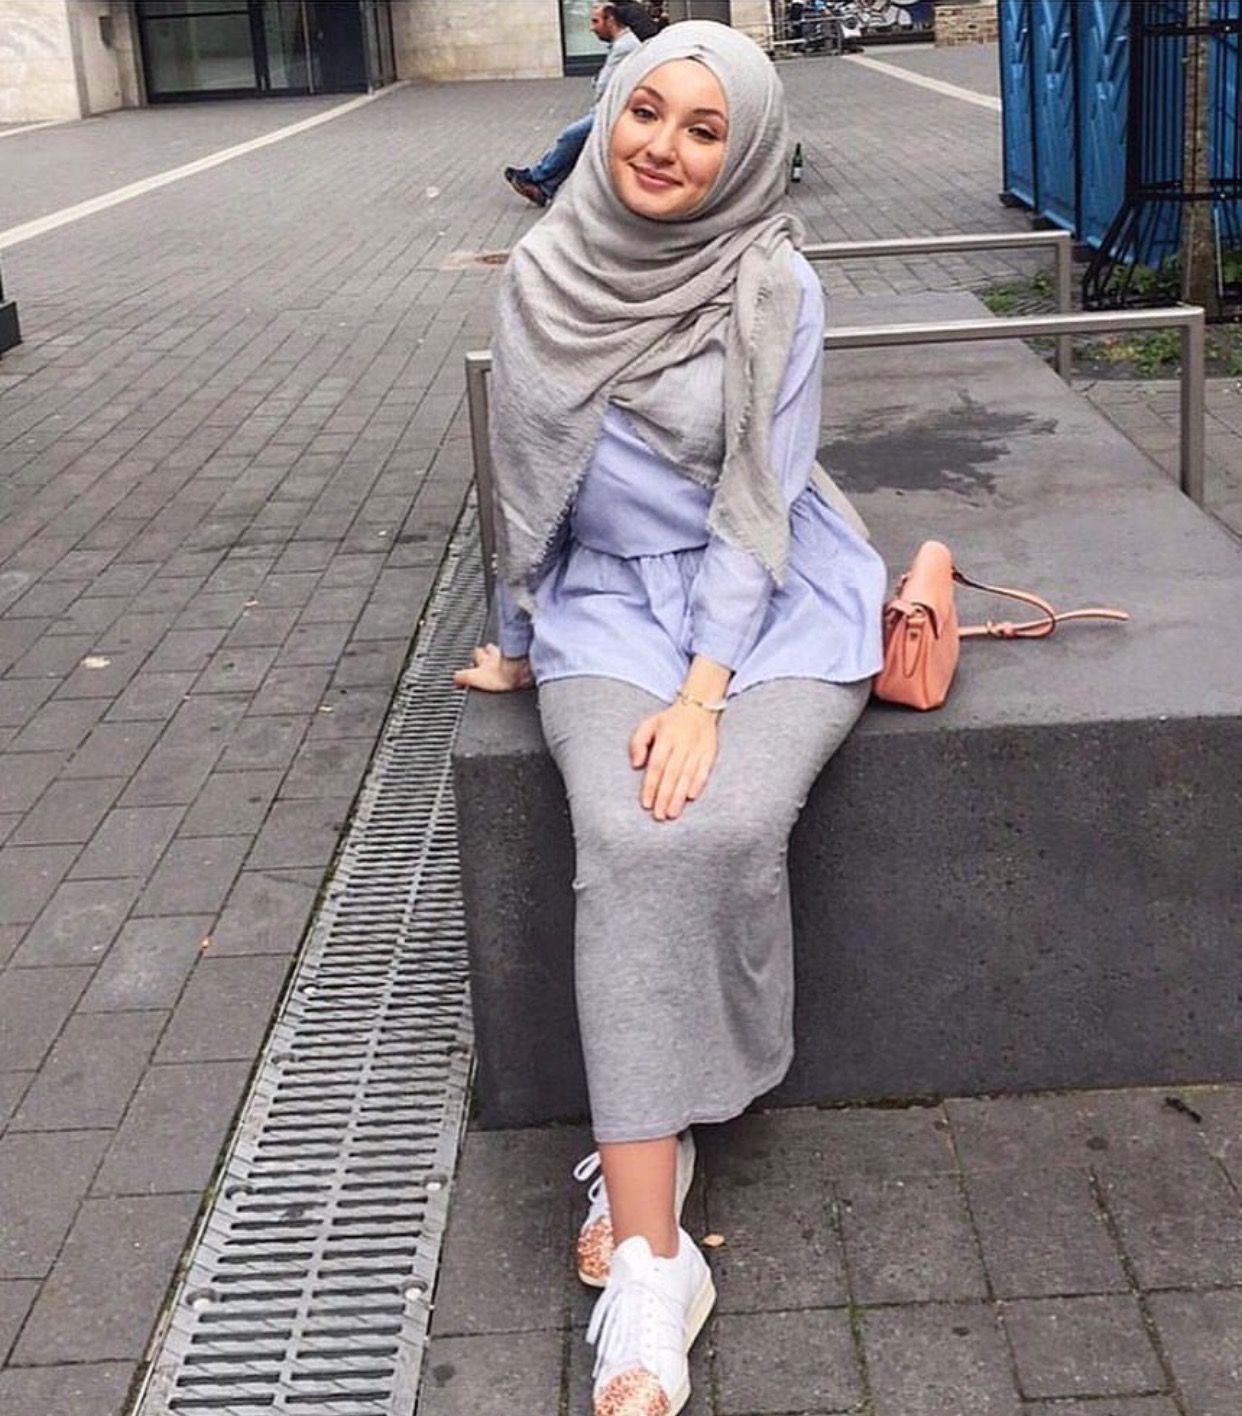 Pinterest @adarkurdish | Hijab+Skirt | Pinterest | Hijab Outfit Hijabs And Muslim Fashion